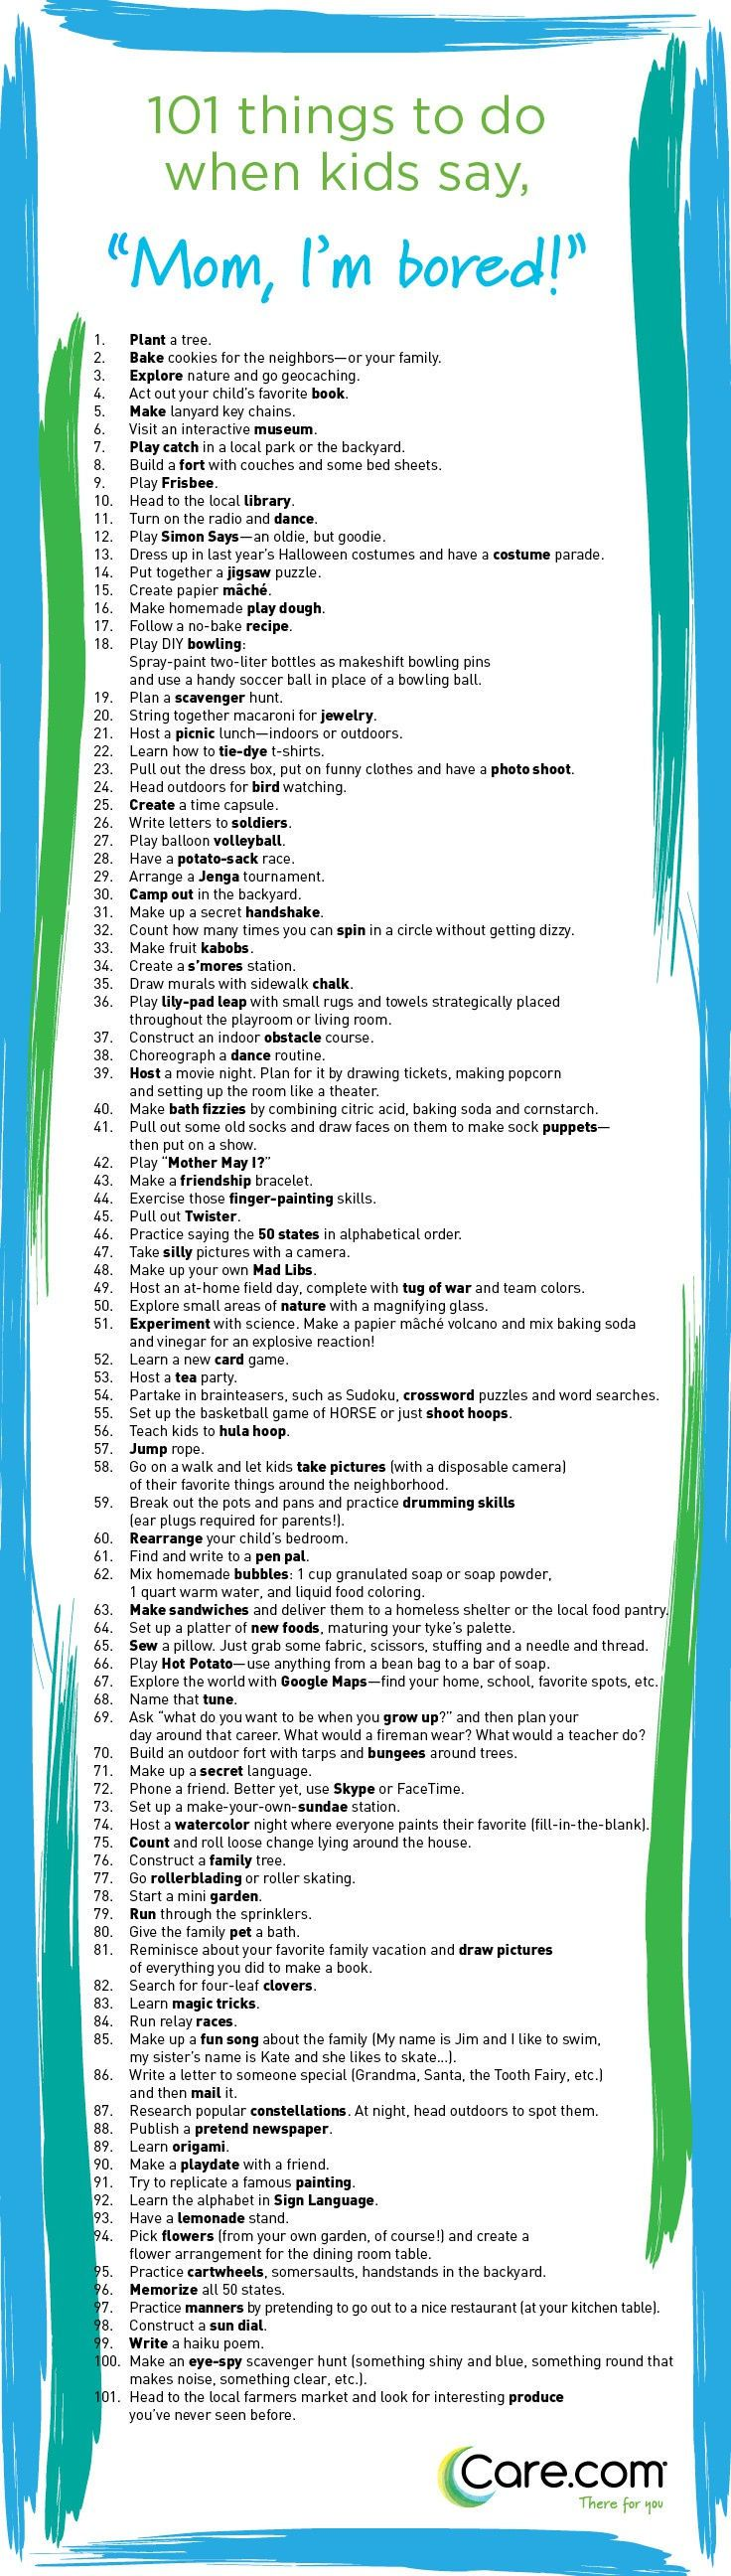 101 Things to Do When Kids Say I'm Bored. // Can't wait to do these with my kids one day